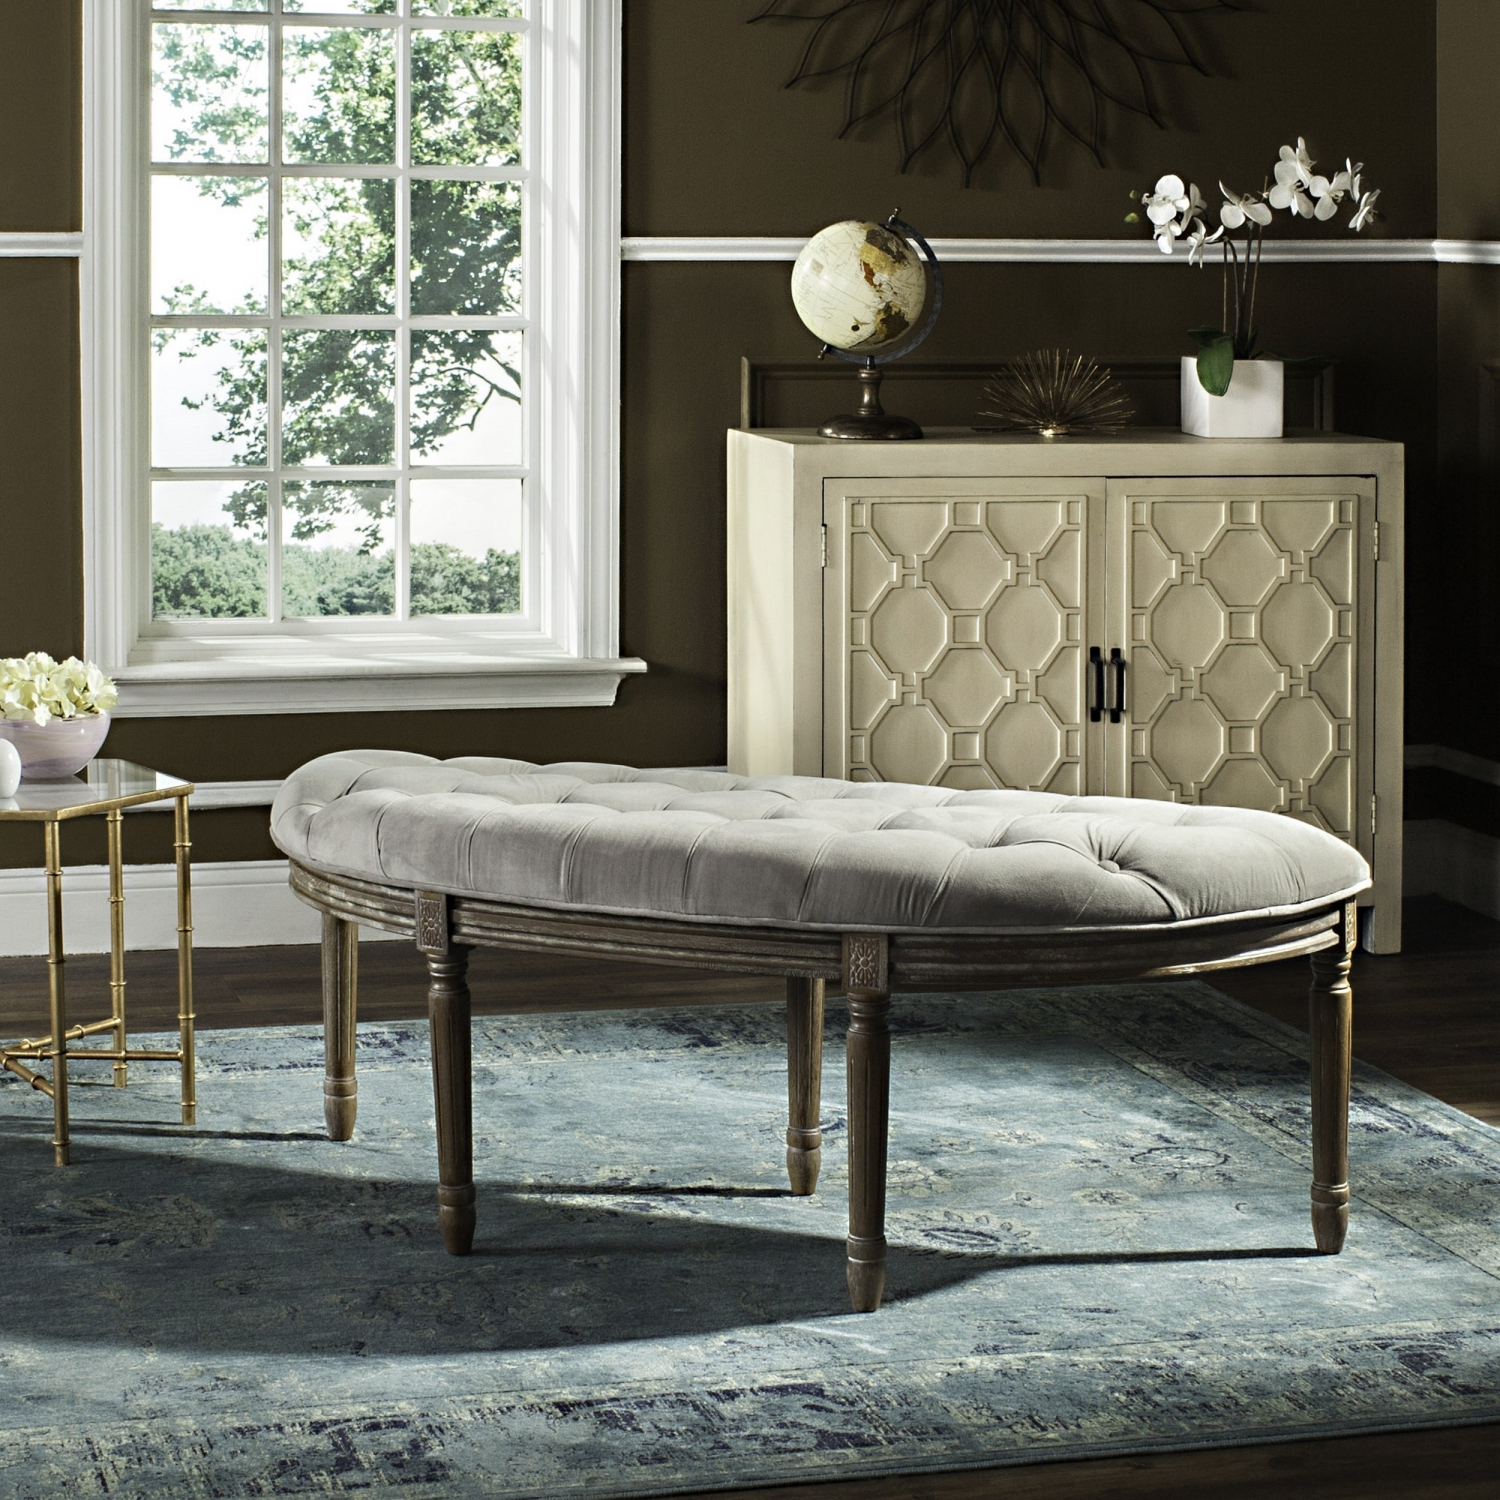 Wondrous Details About Lanier Tufted Rustic Semi Circle Grey Bench 50 X 19 3 X 19 3 Ibusinesslaw Wood Chair Design Ideas Ibusinesslaworg